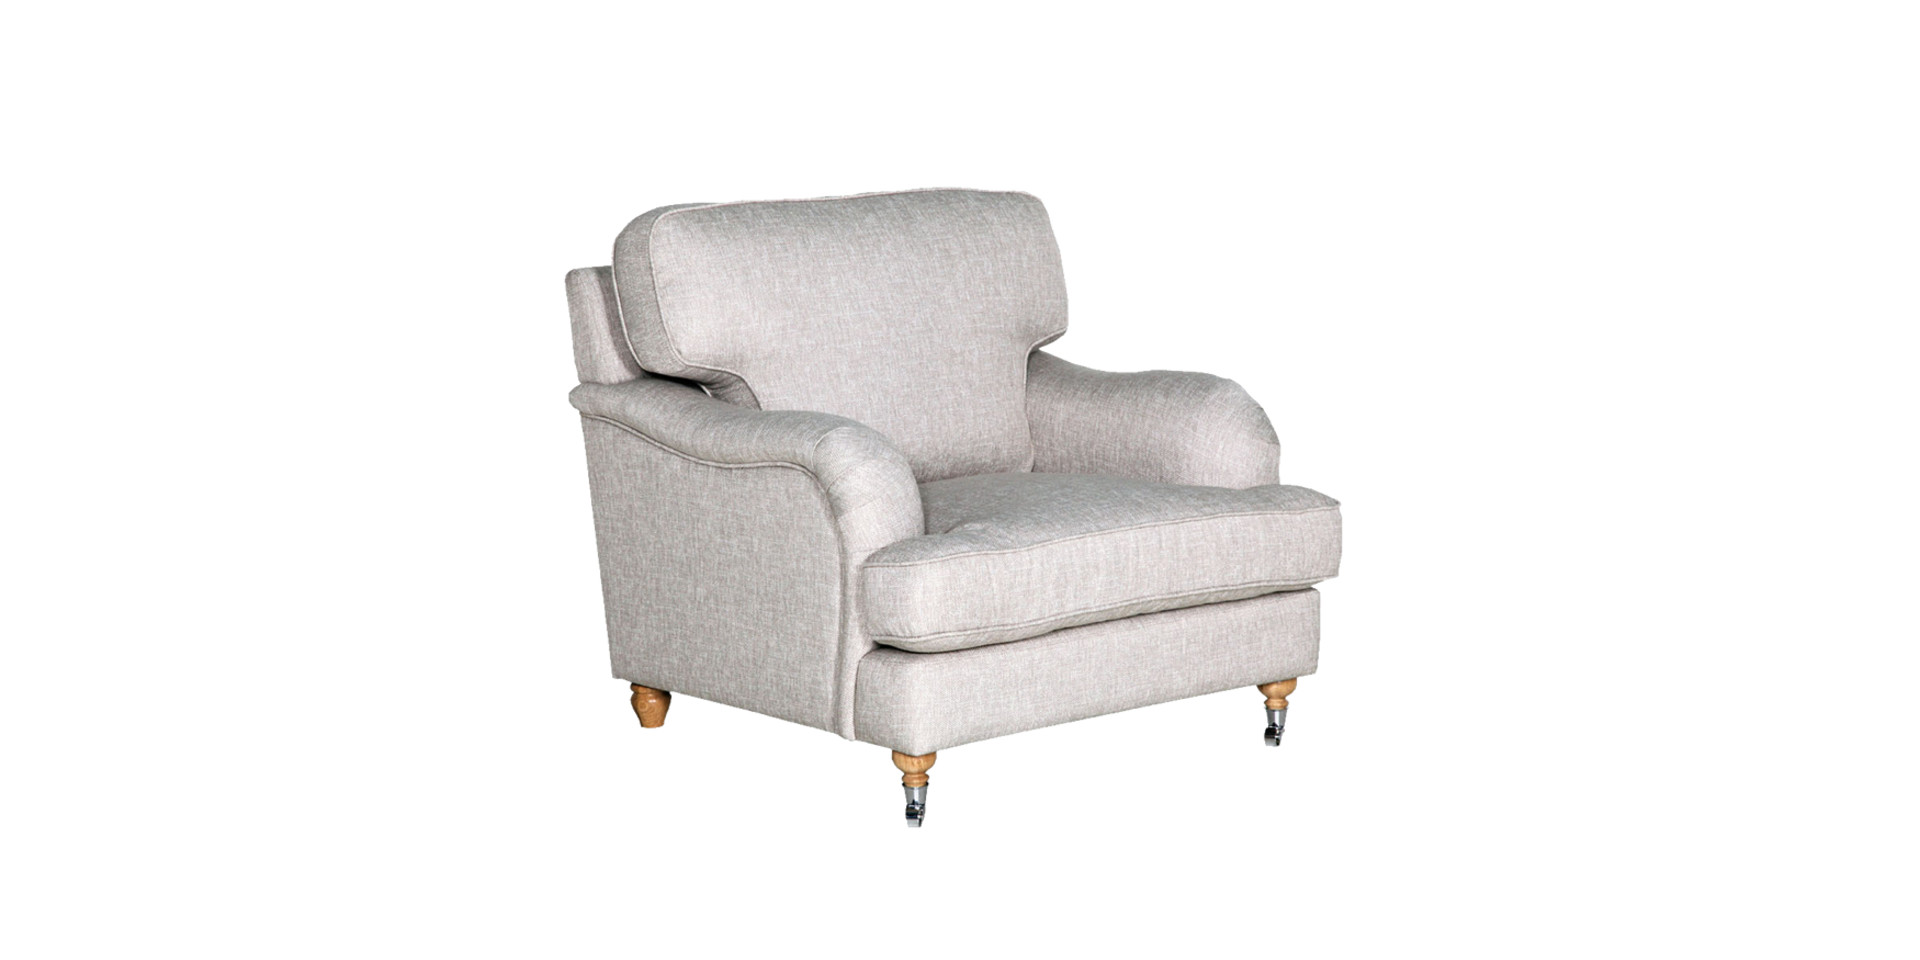 sits-howard-fauteuil-armchair_nancy2_beige_2